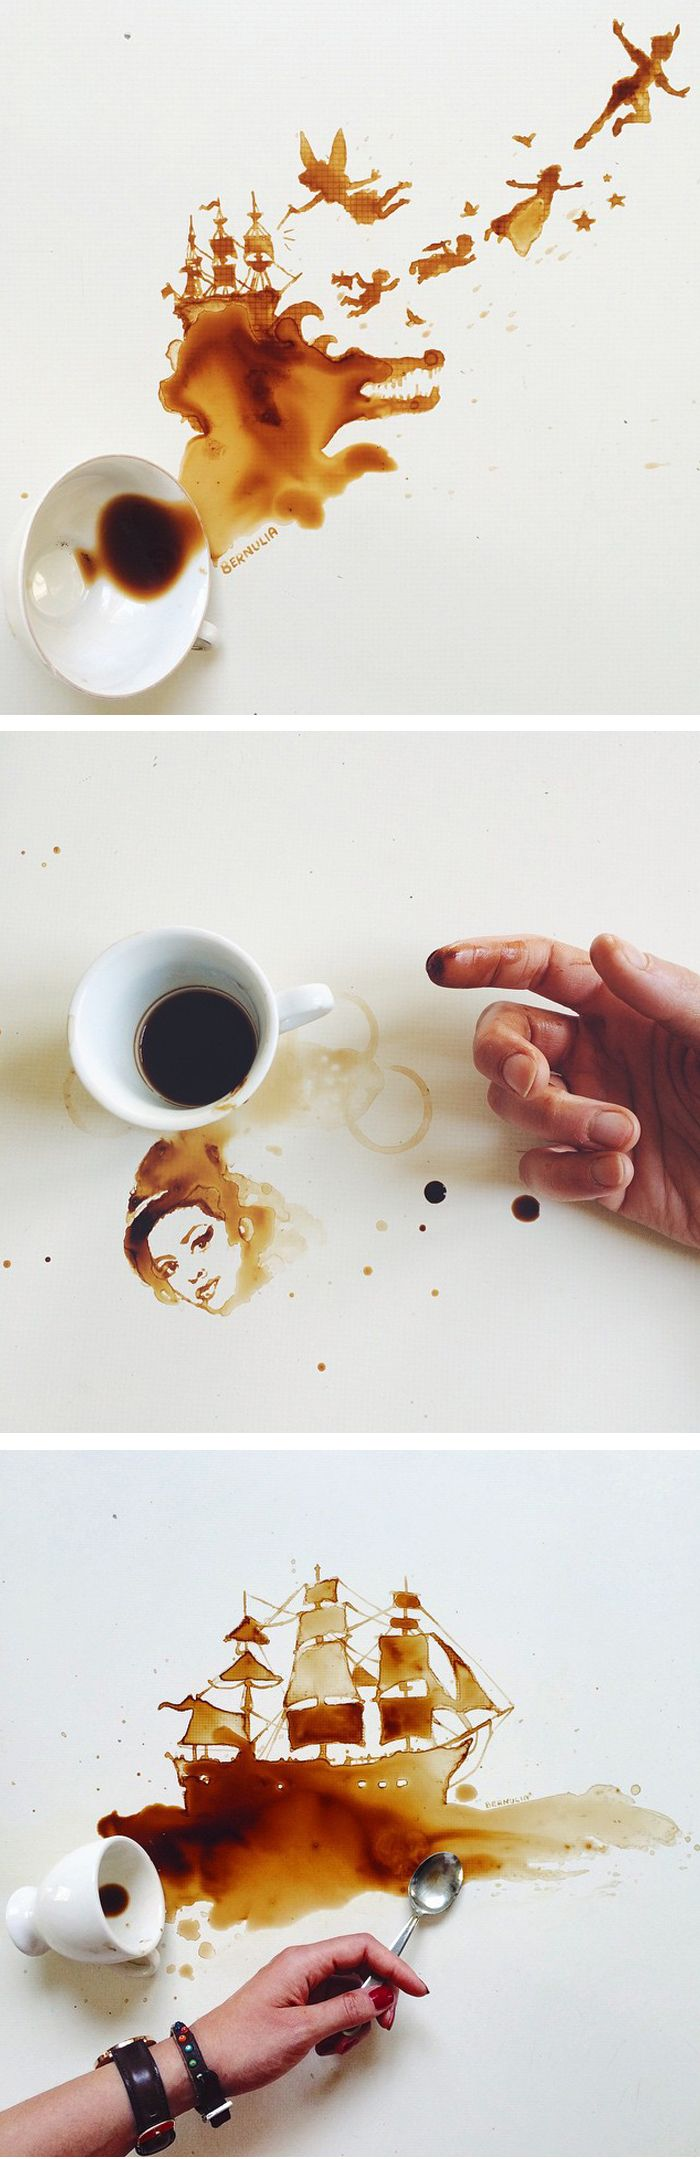 Coffe art by Giulia Bernardelli | coffee painting | unconventional art